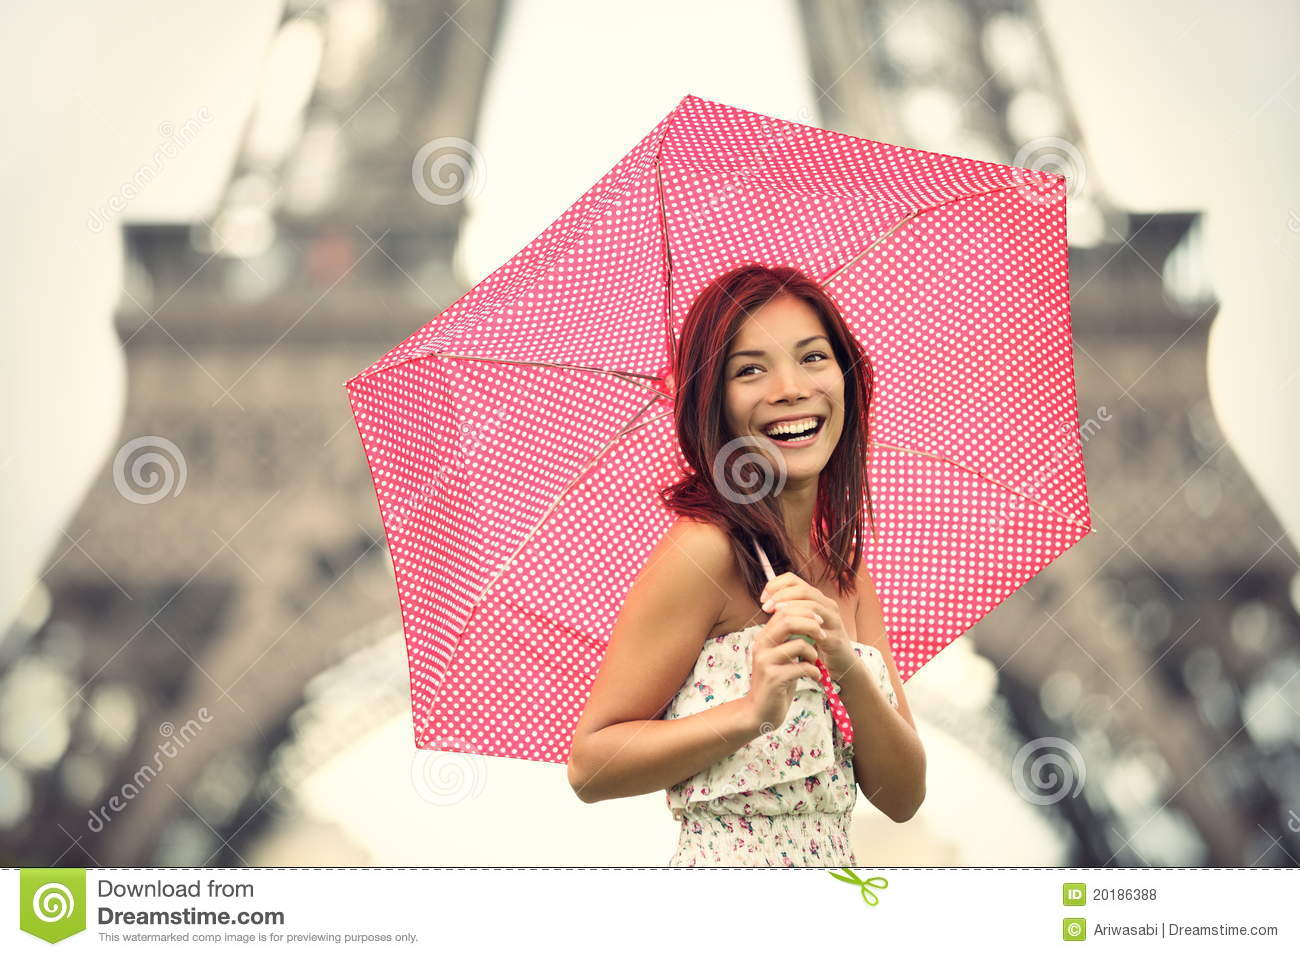 Eiffel tower woman happy smiling in front of tourist attraction eiffel